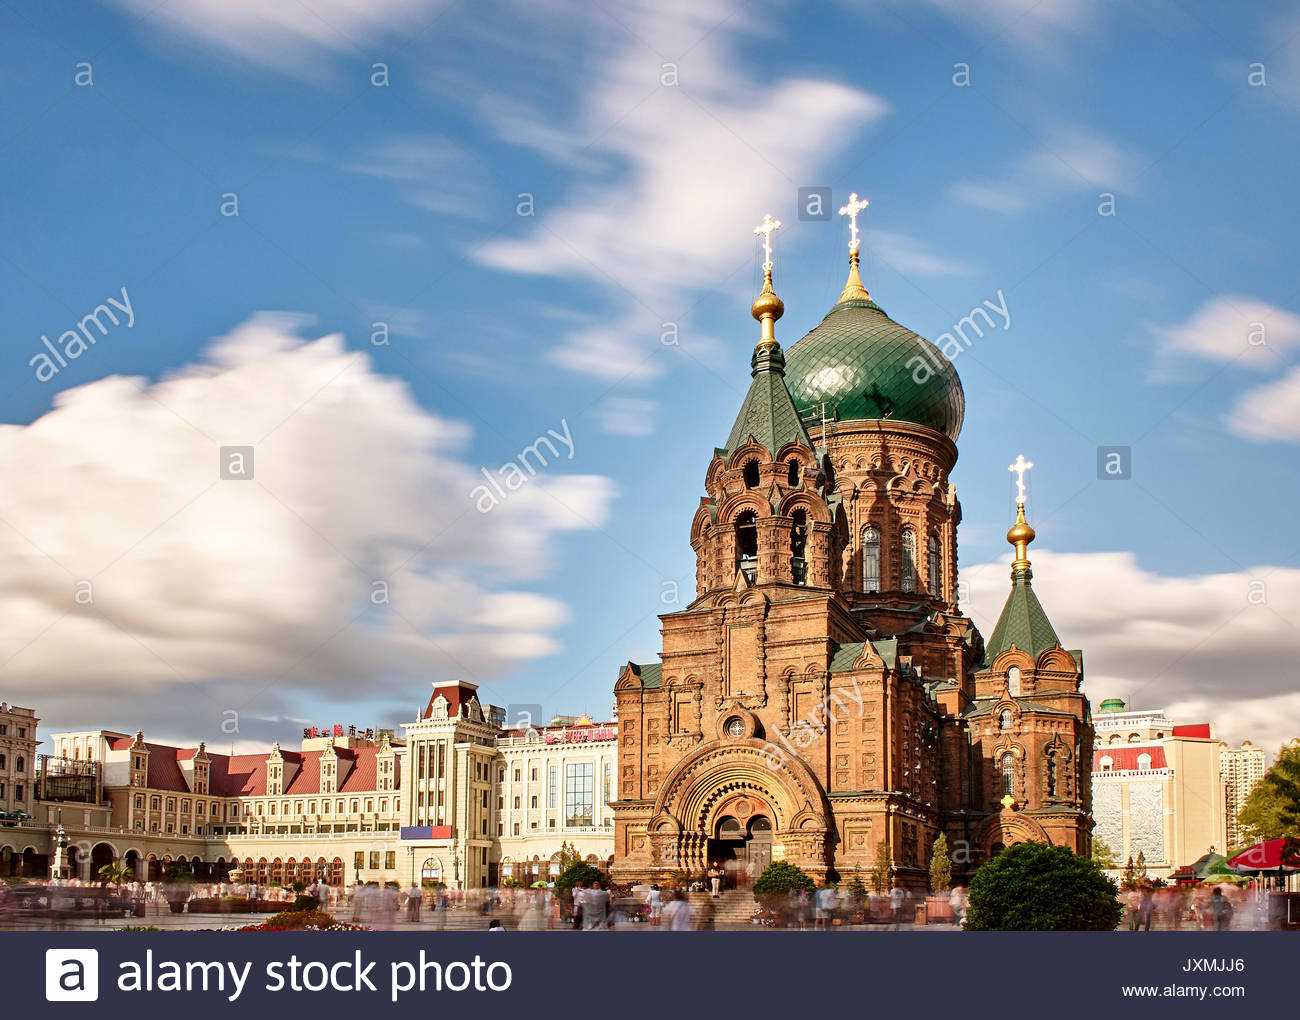 Saint Sophia Cathedral Harbin Png - St Sophia Cathedral, Harbin, Heilongjiang, China Stock Photo - Alamy